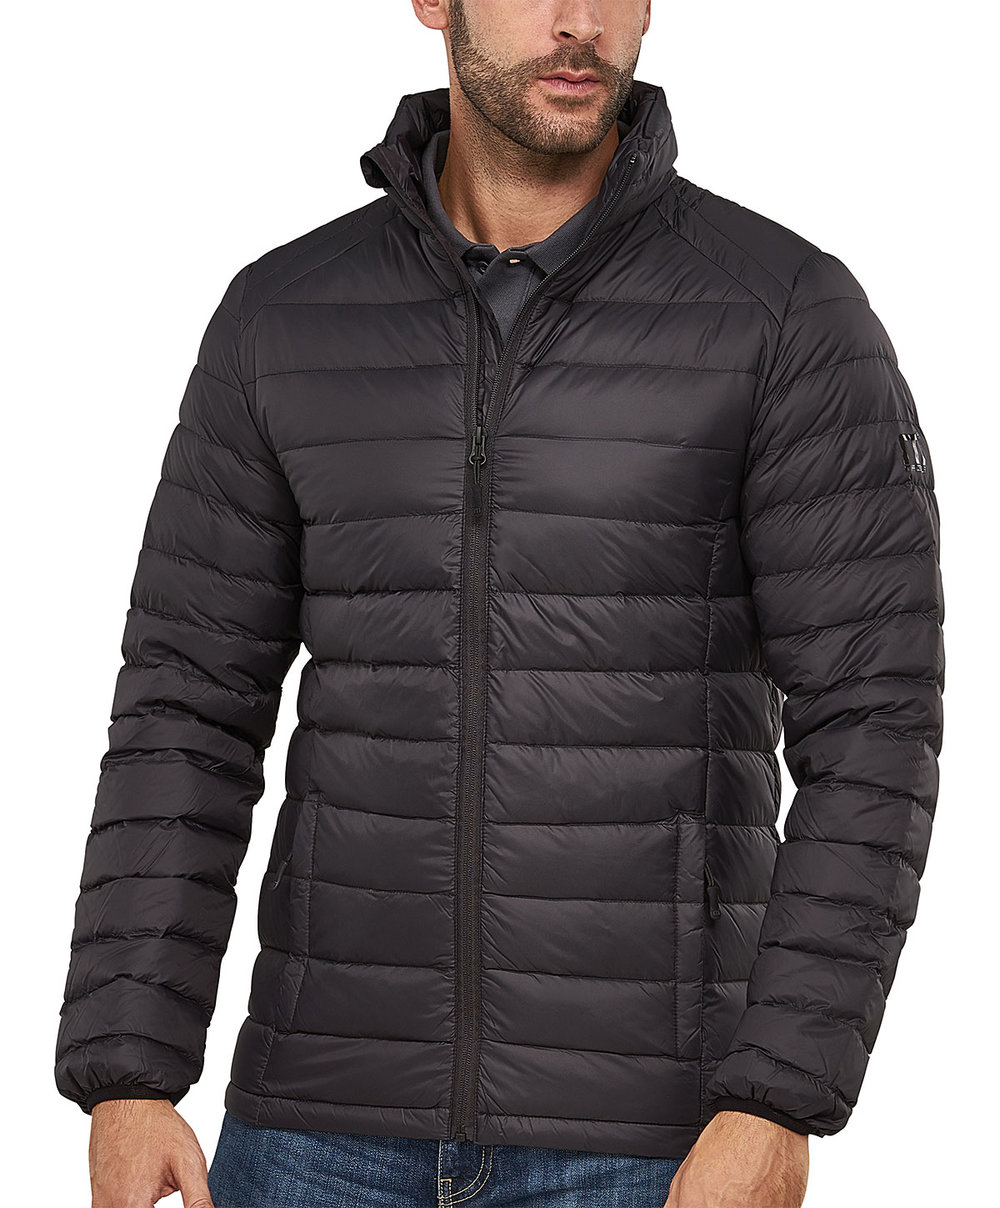 "JET 90/10 DOWNTECH ""STITCH-THROUGH"" JACKET MALE MACBLACK"